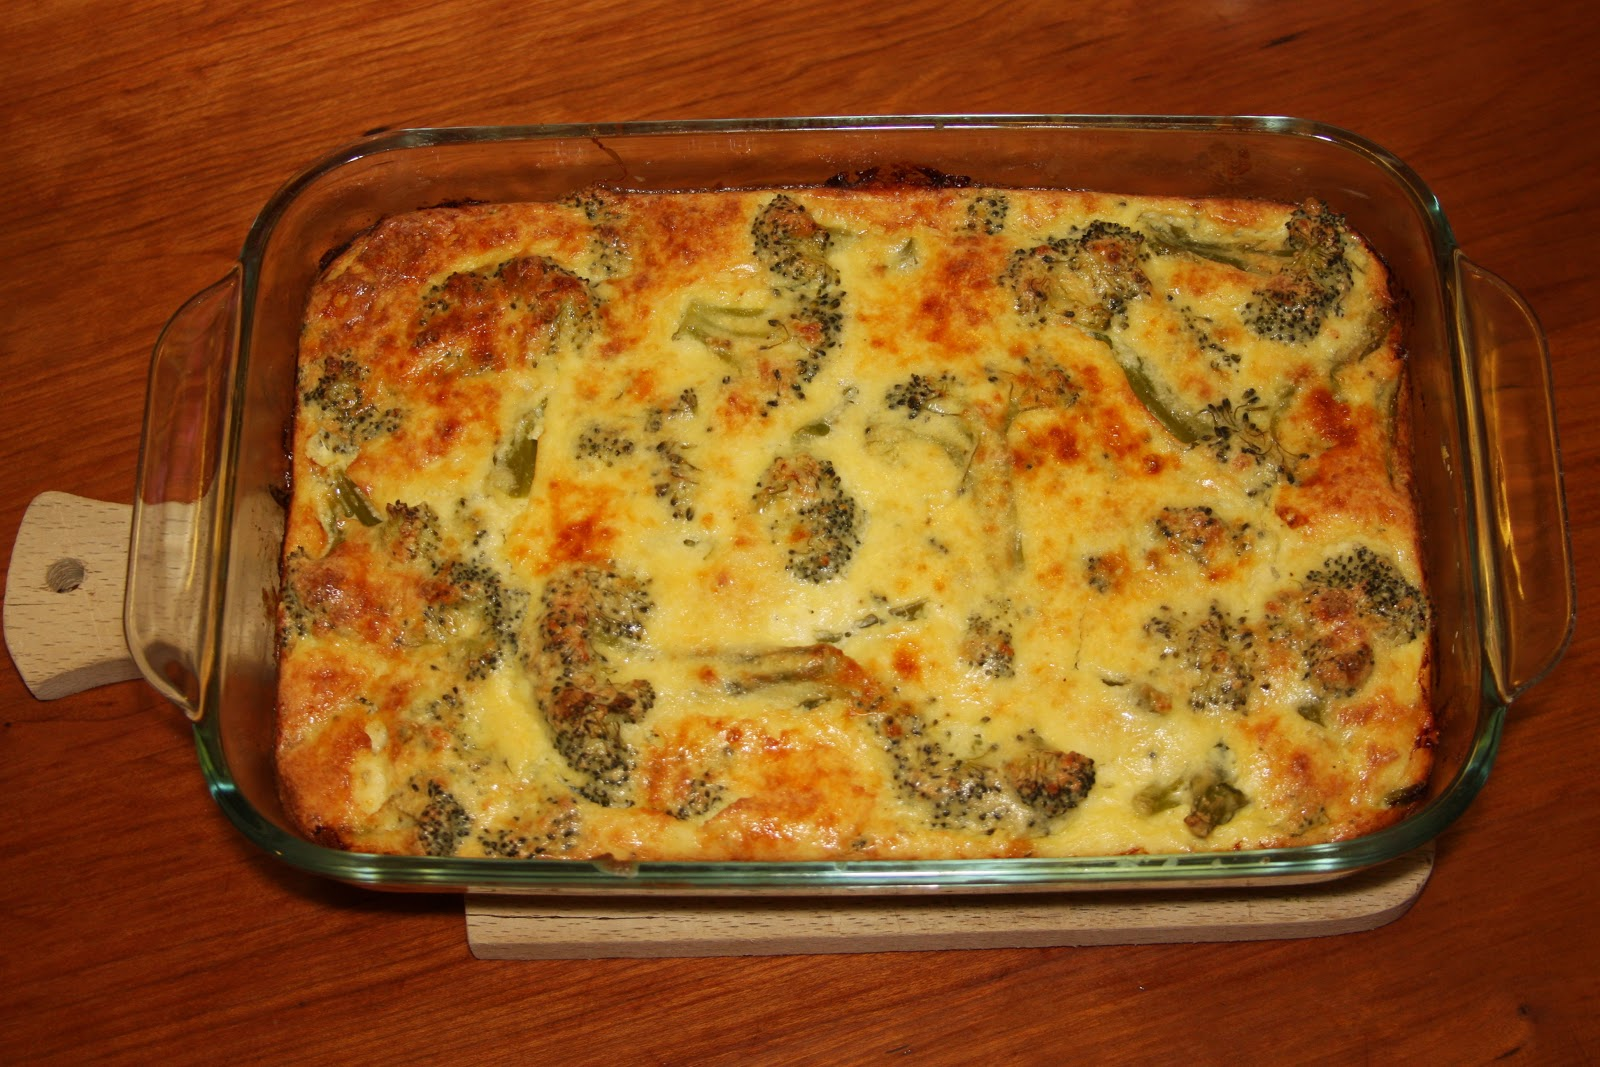 ... Broccoli Cheese Casserole, Easy Broccoli Cheese Casserole, Broccoli